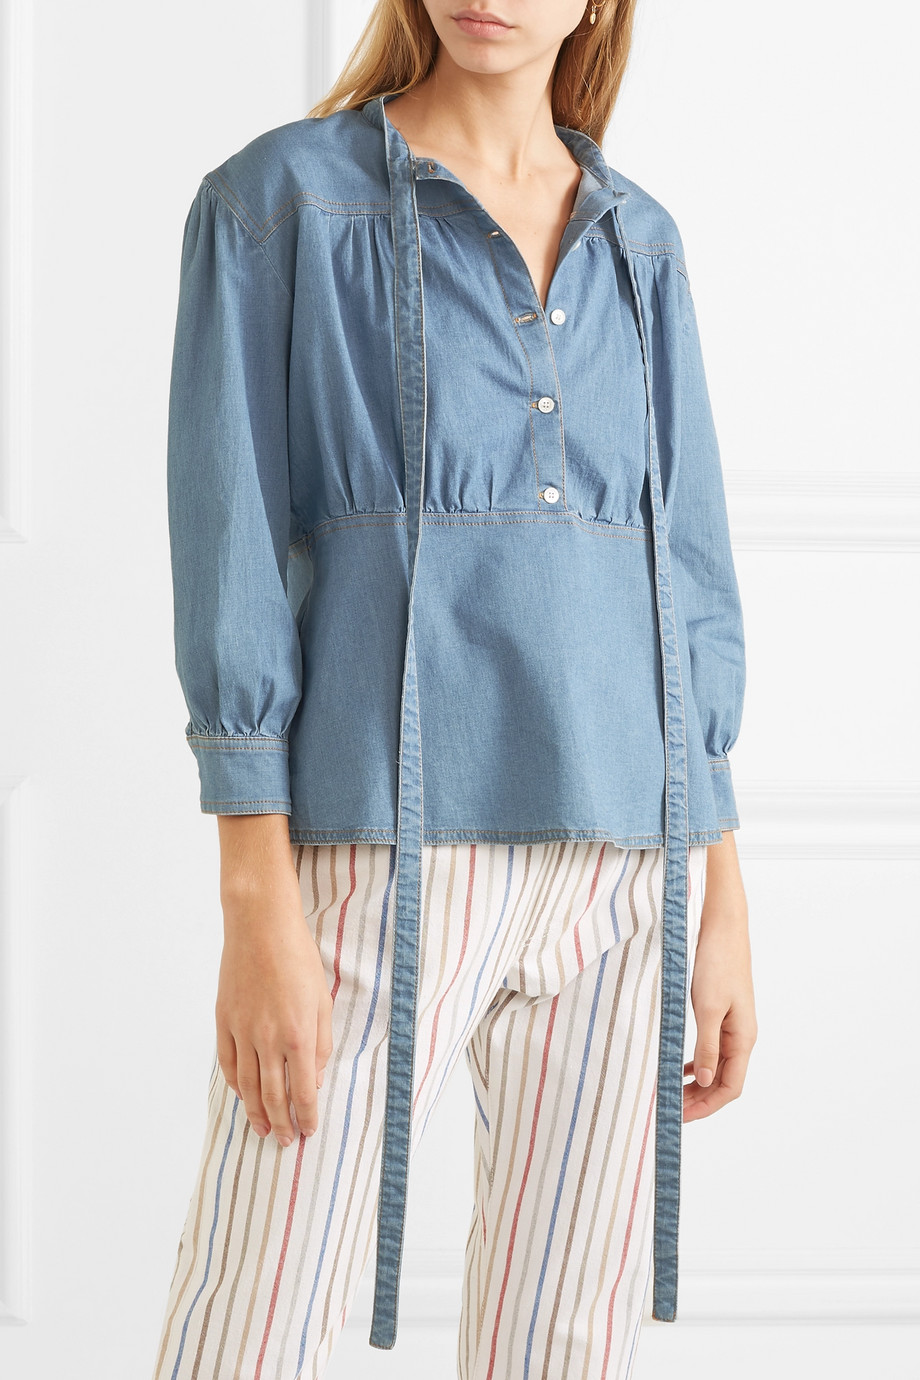 Long sleeved blouse Sonia Rykiel buy Long sleeved blouse Sonia Rykiel internet shop